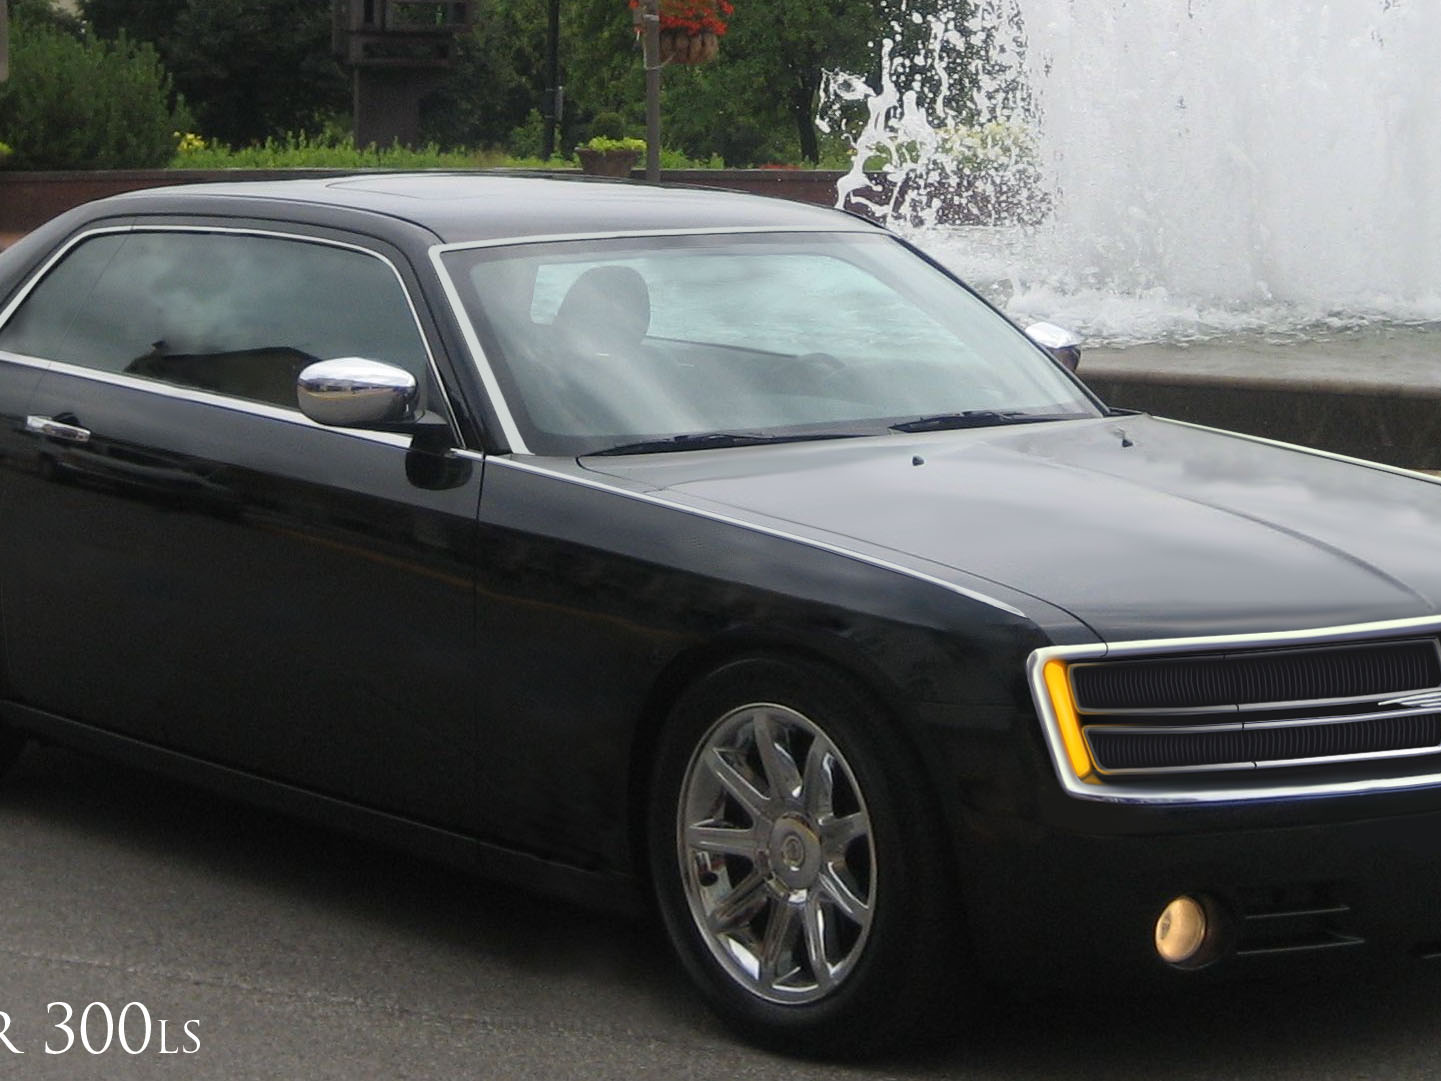 news for sale classifieds hemmings chrysler motor coupe cars